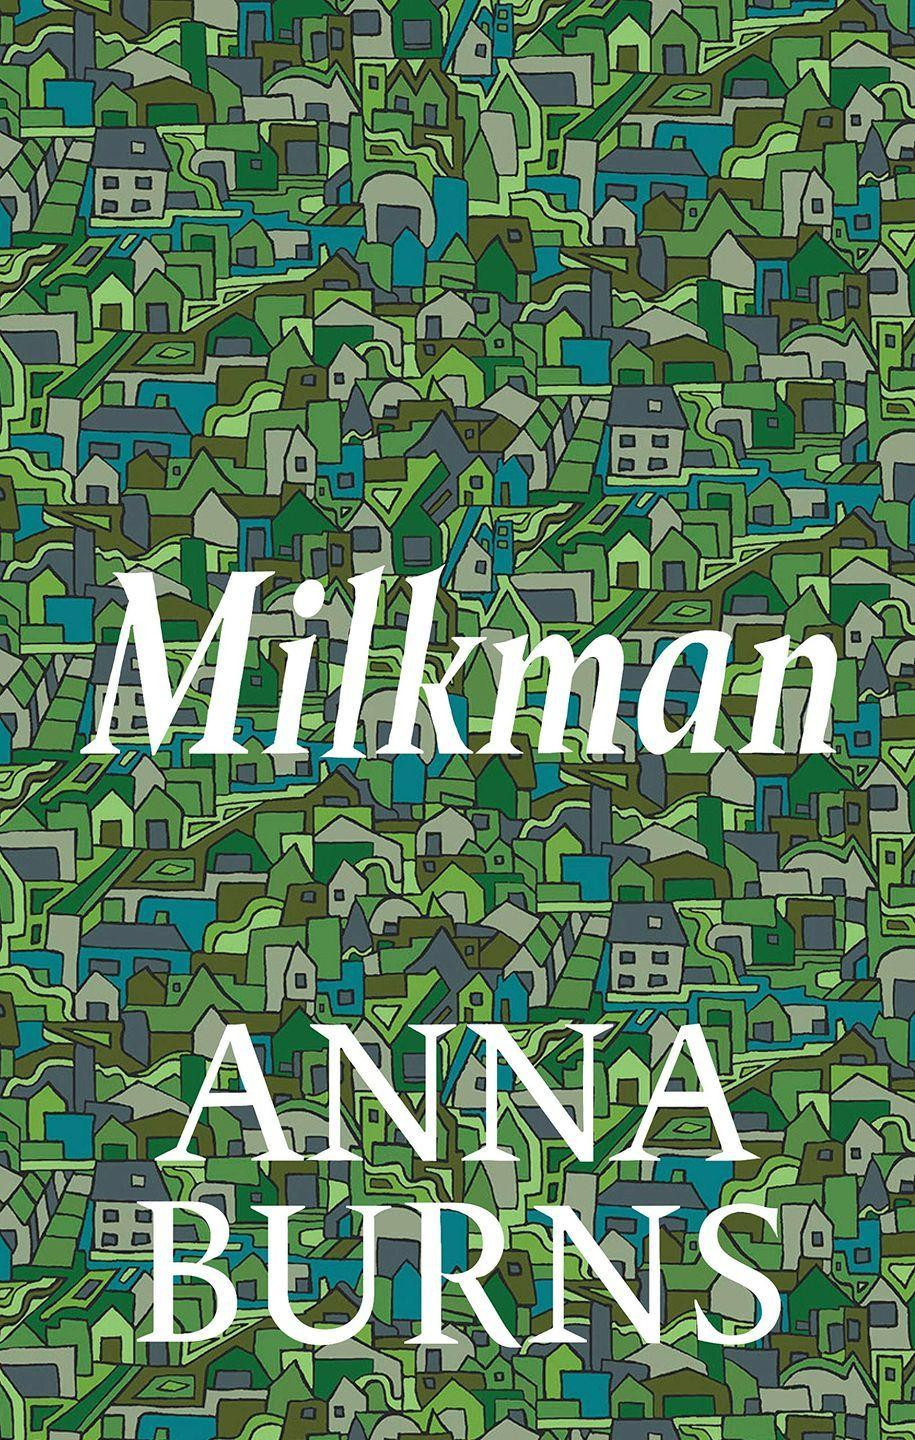 "<p>A tale of gossip and hearsay, silence and deliberate deafness, Milkman won the 2018 Man Booker Prize for Fiction.<br></p><p><a class=""link rapid-noclick-resp"" href=""https://www.amazon.co.uk/Milkman-Anna-Burns/dp/0571355072/ref=tmm_hrd_swatch_0?_encoding=UTF8&tag=hearstuk-yahoo-21&ascsubtag=%5Bartid%7C1921.g.32141605%5Bsrc%7Cyahoo-uk"" rel=""nofollow noopener"" target=""_blank"" data-ylk=""slk:SHOP NOW"">SHOP NOW </a></p>"